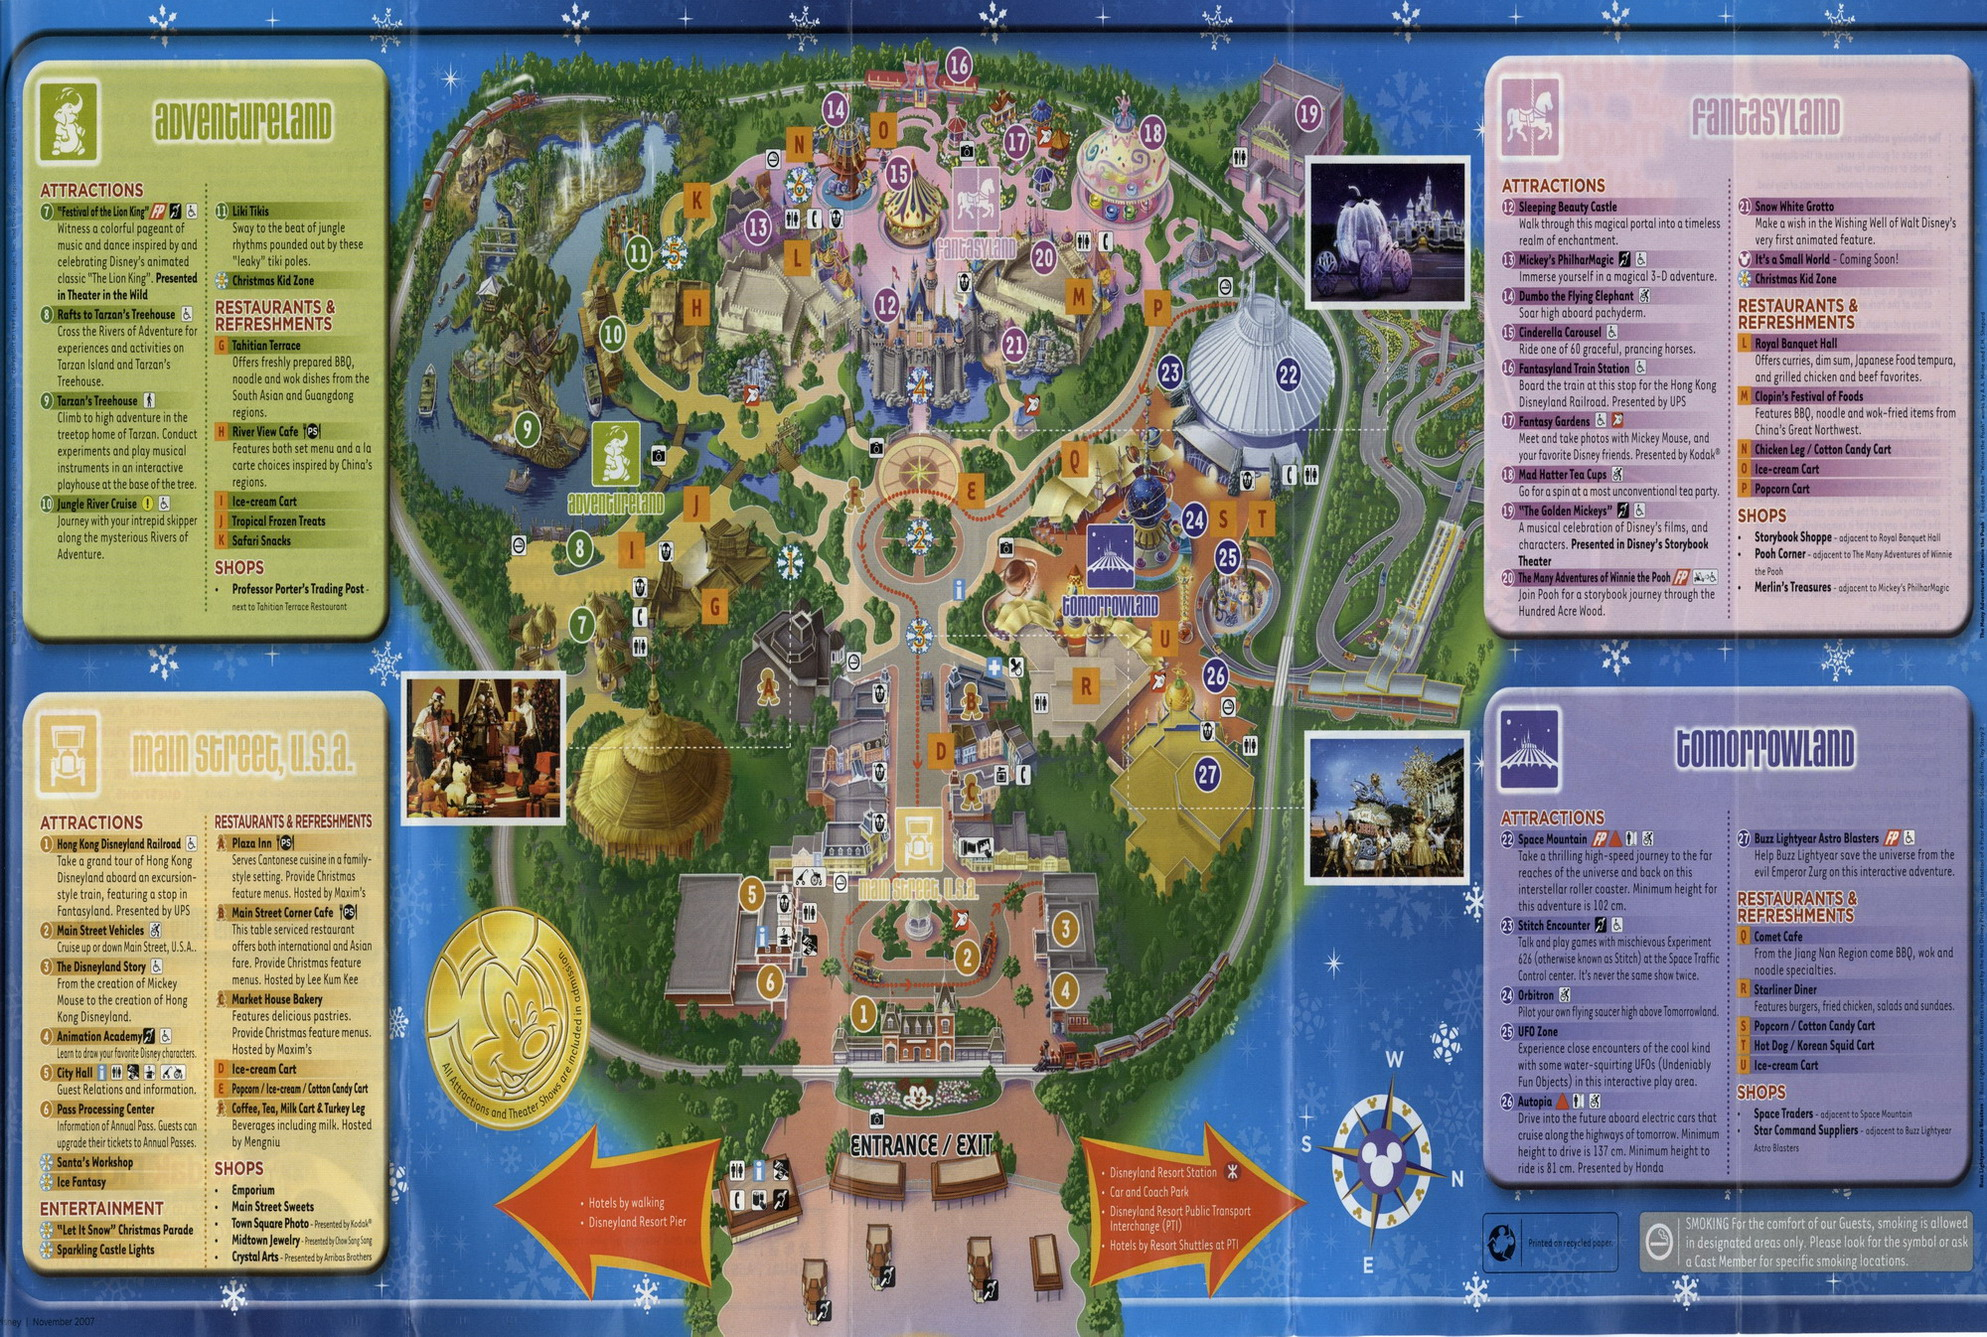 Hong kong disneyland park map hong kong maps china tour advisors hong kong disneyland map publicscrutiny Images